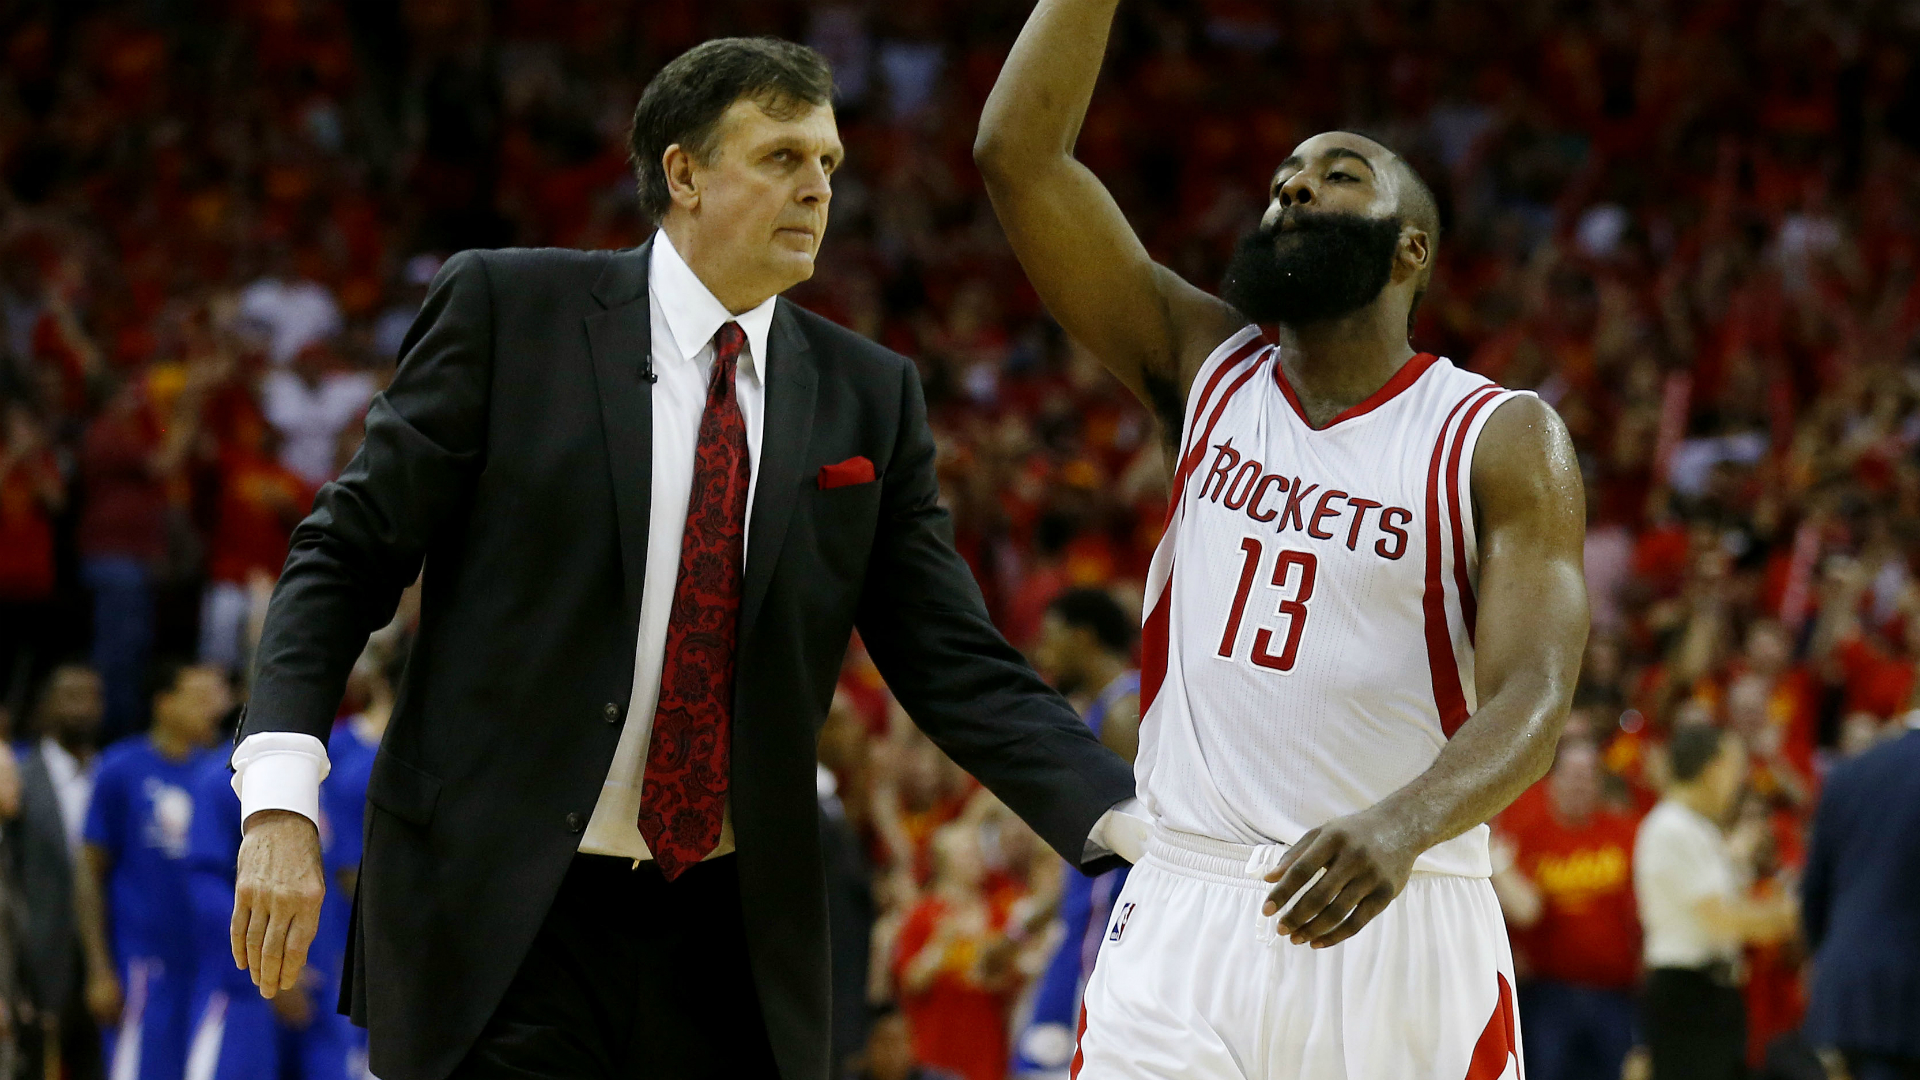 13a039b3dc57 James Harden is not a leader - former Rockets coach Kevin McHale ...